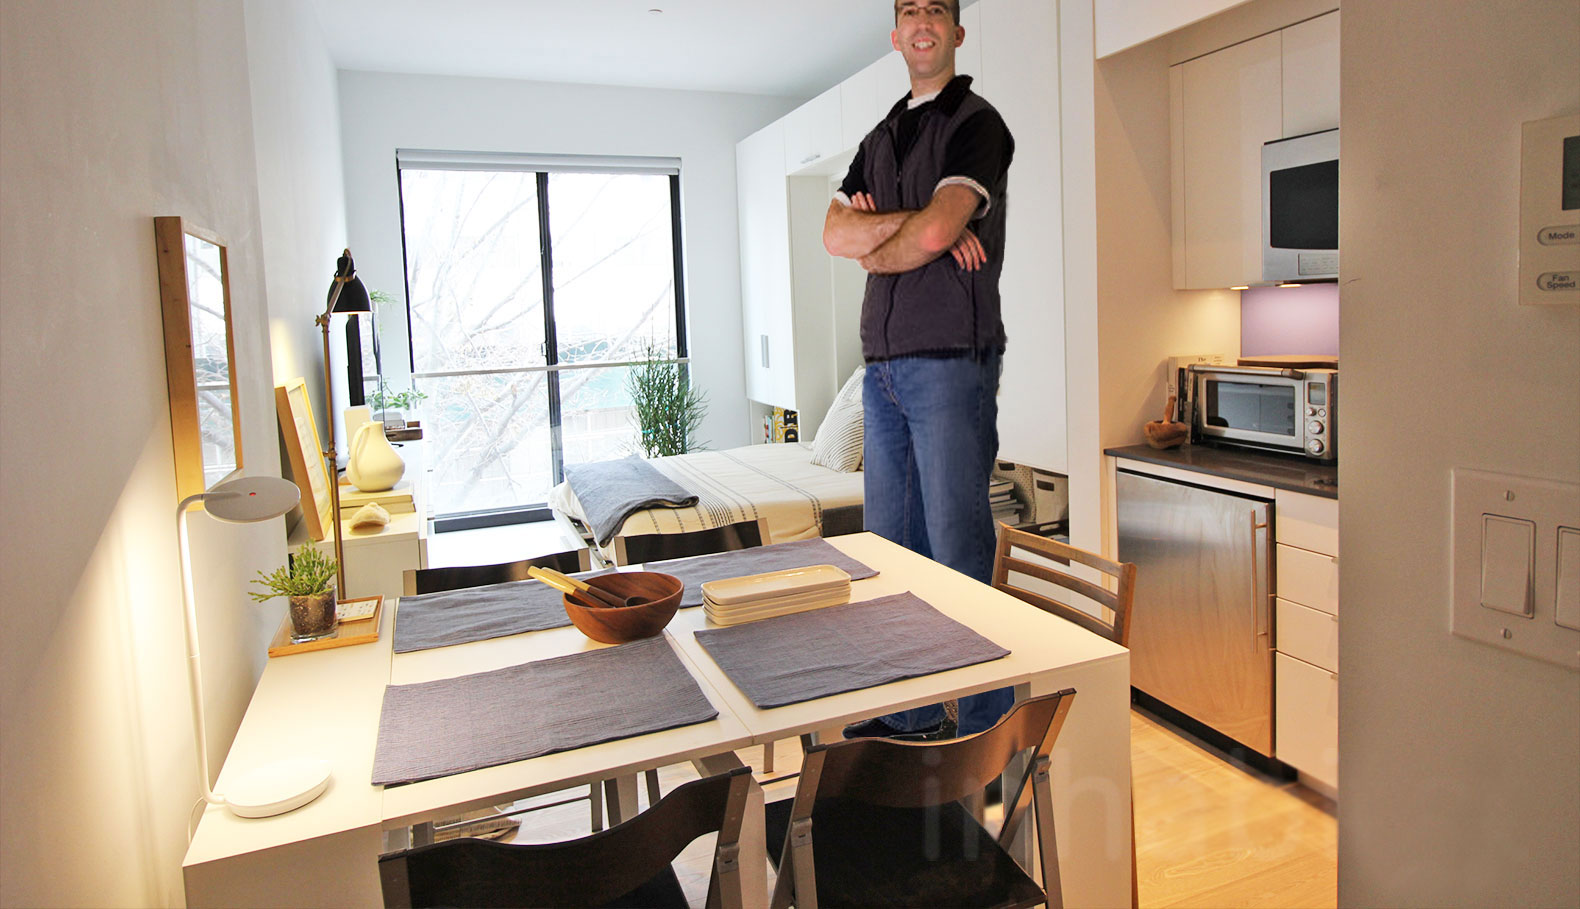 America's tallest man moves into NYC's first micro apartment building